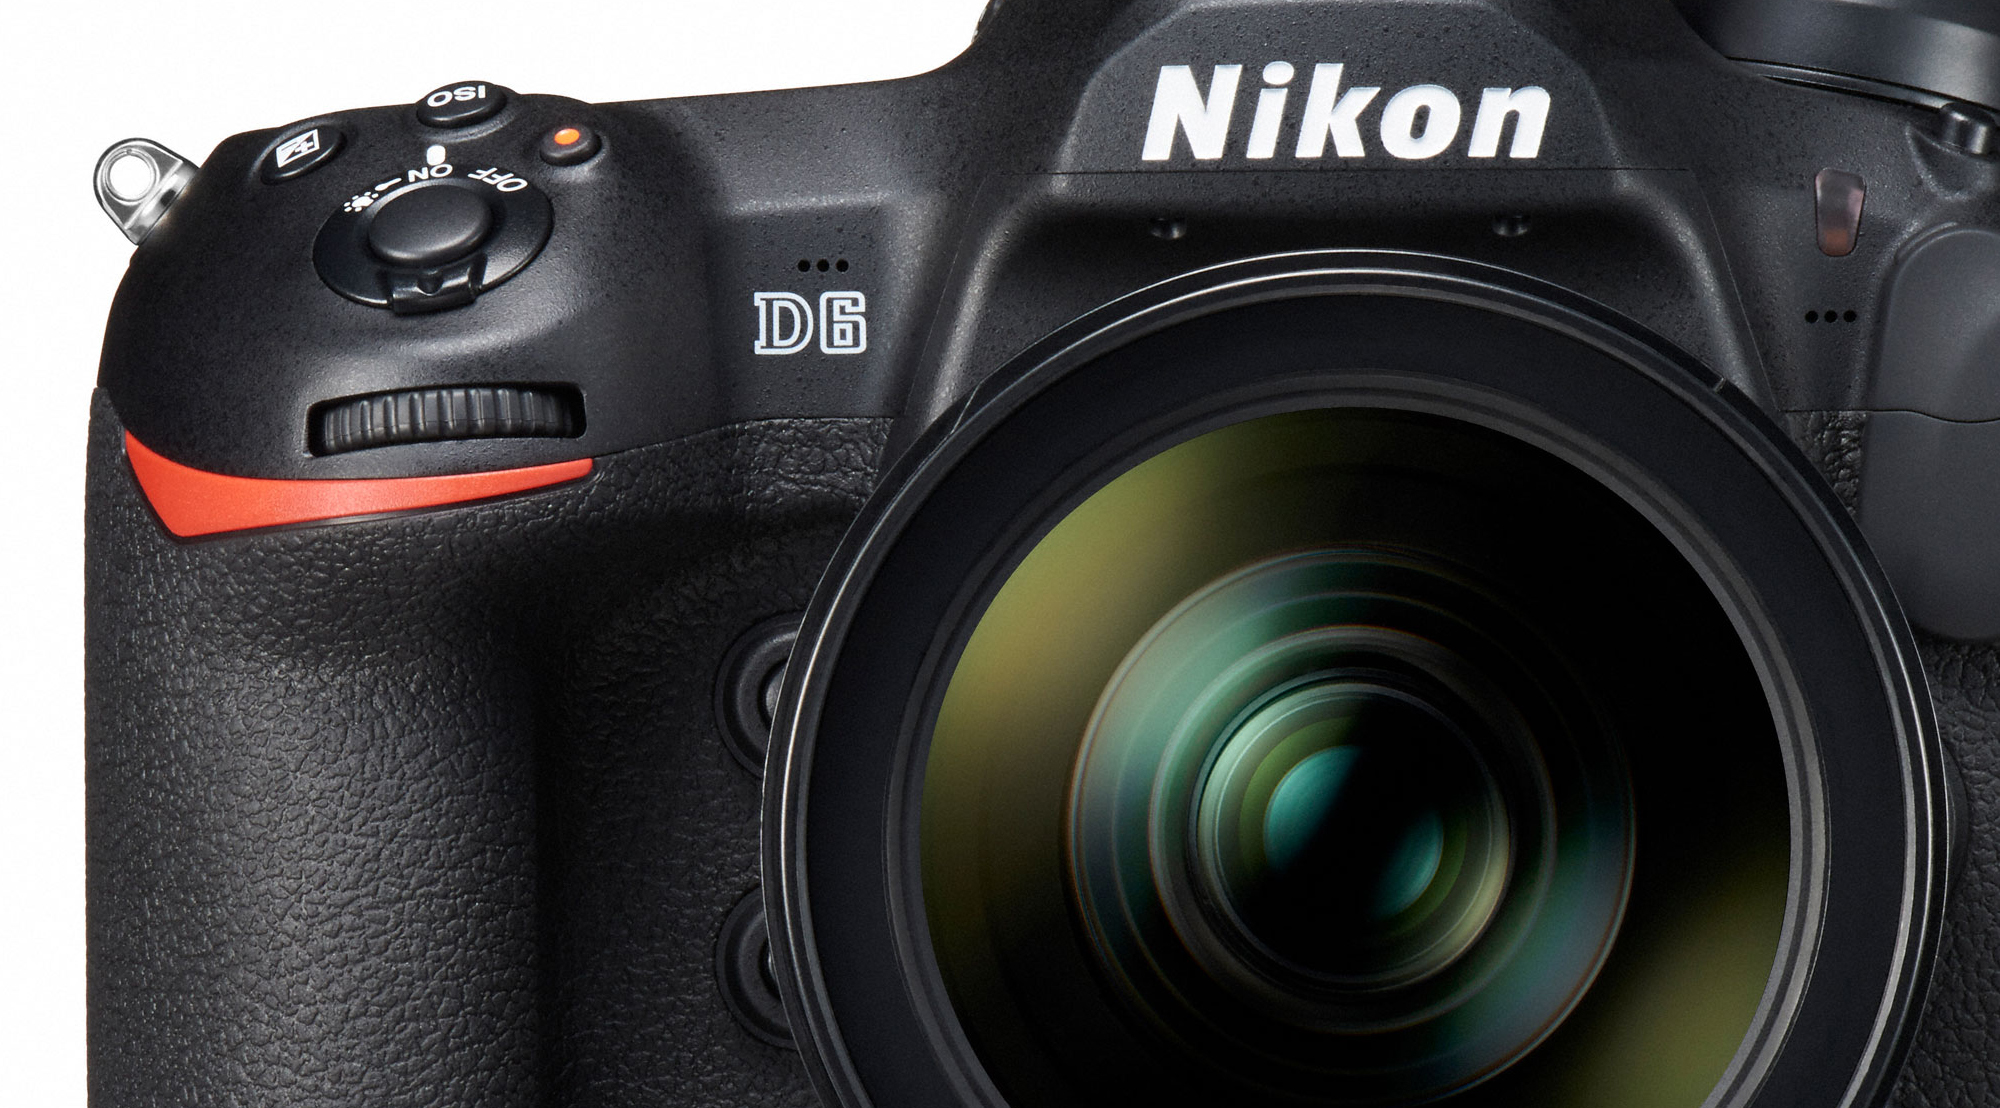 Finally! Nikon D6 confirmed as being in development | TechRadar